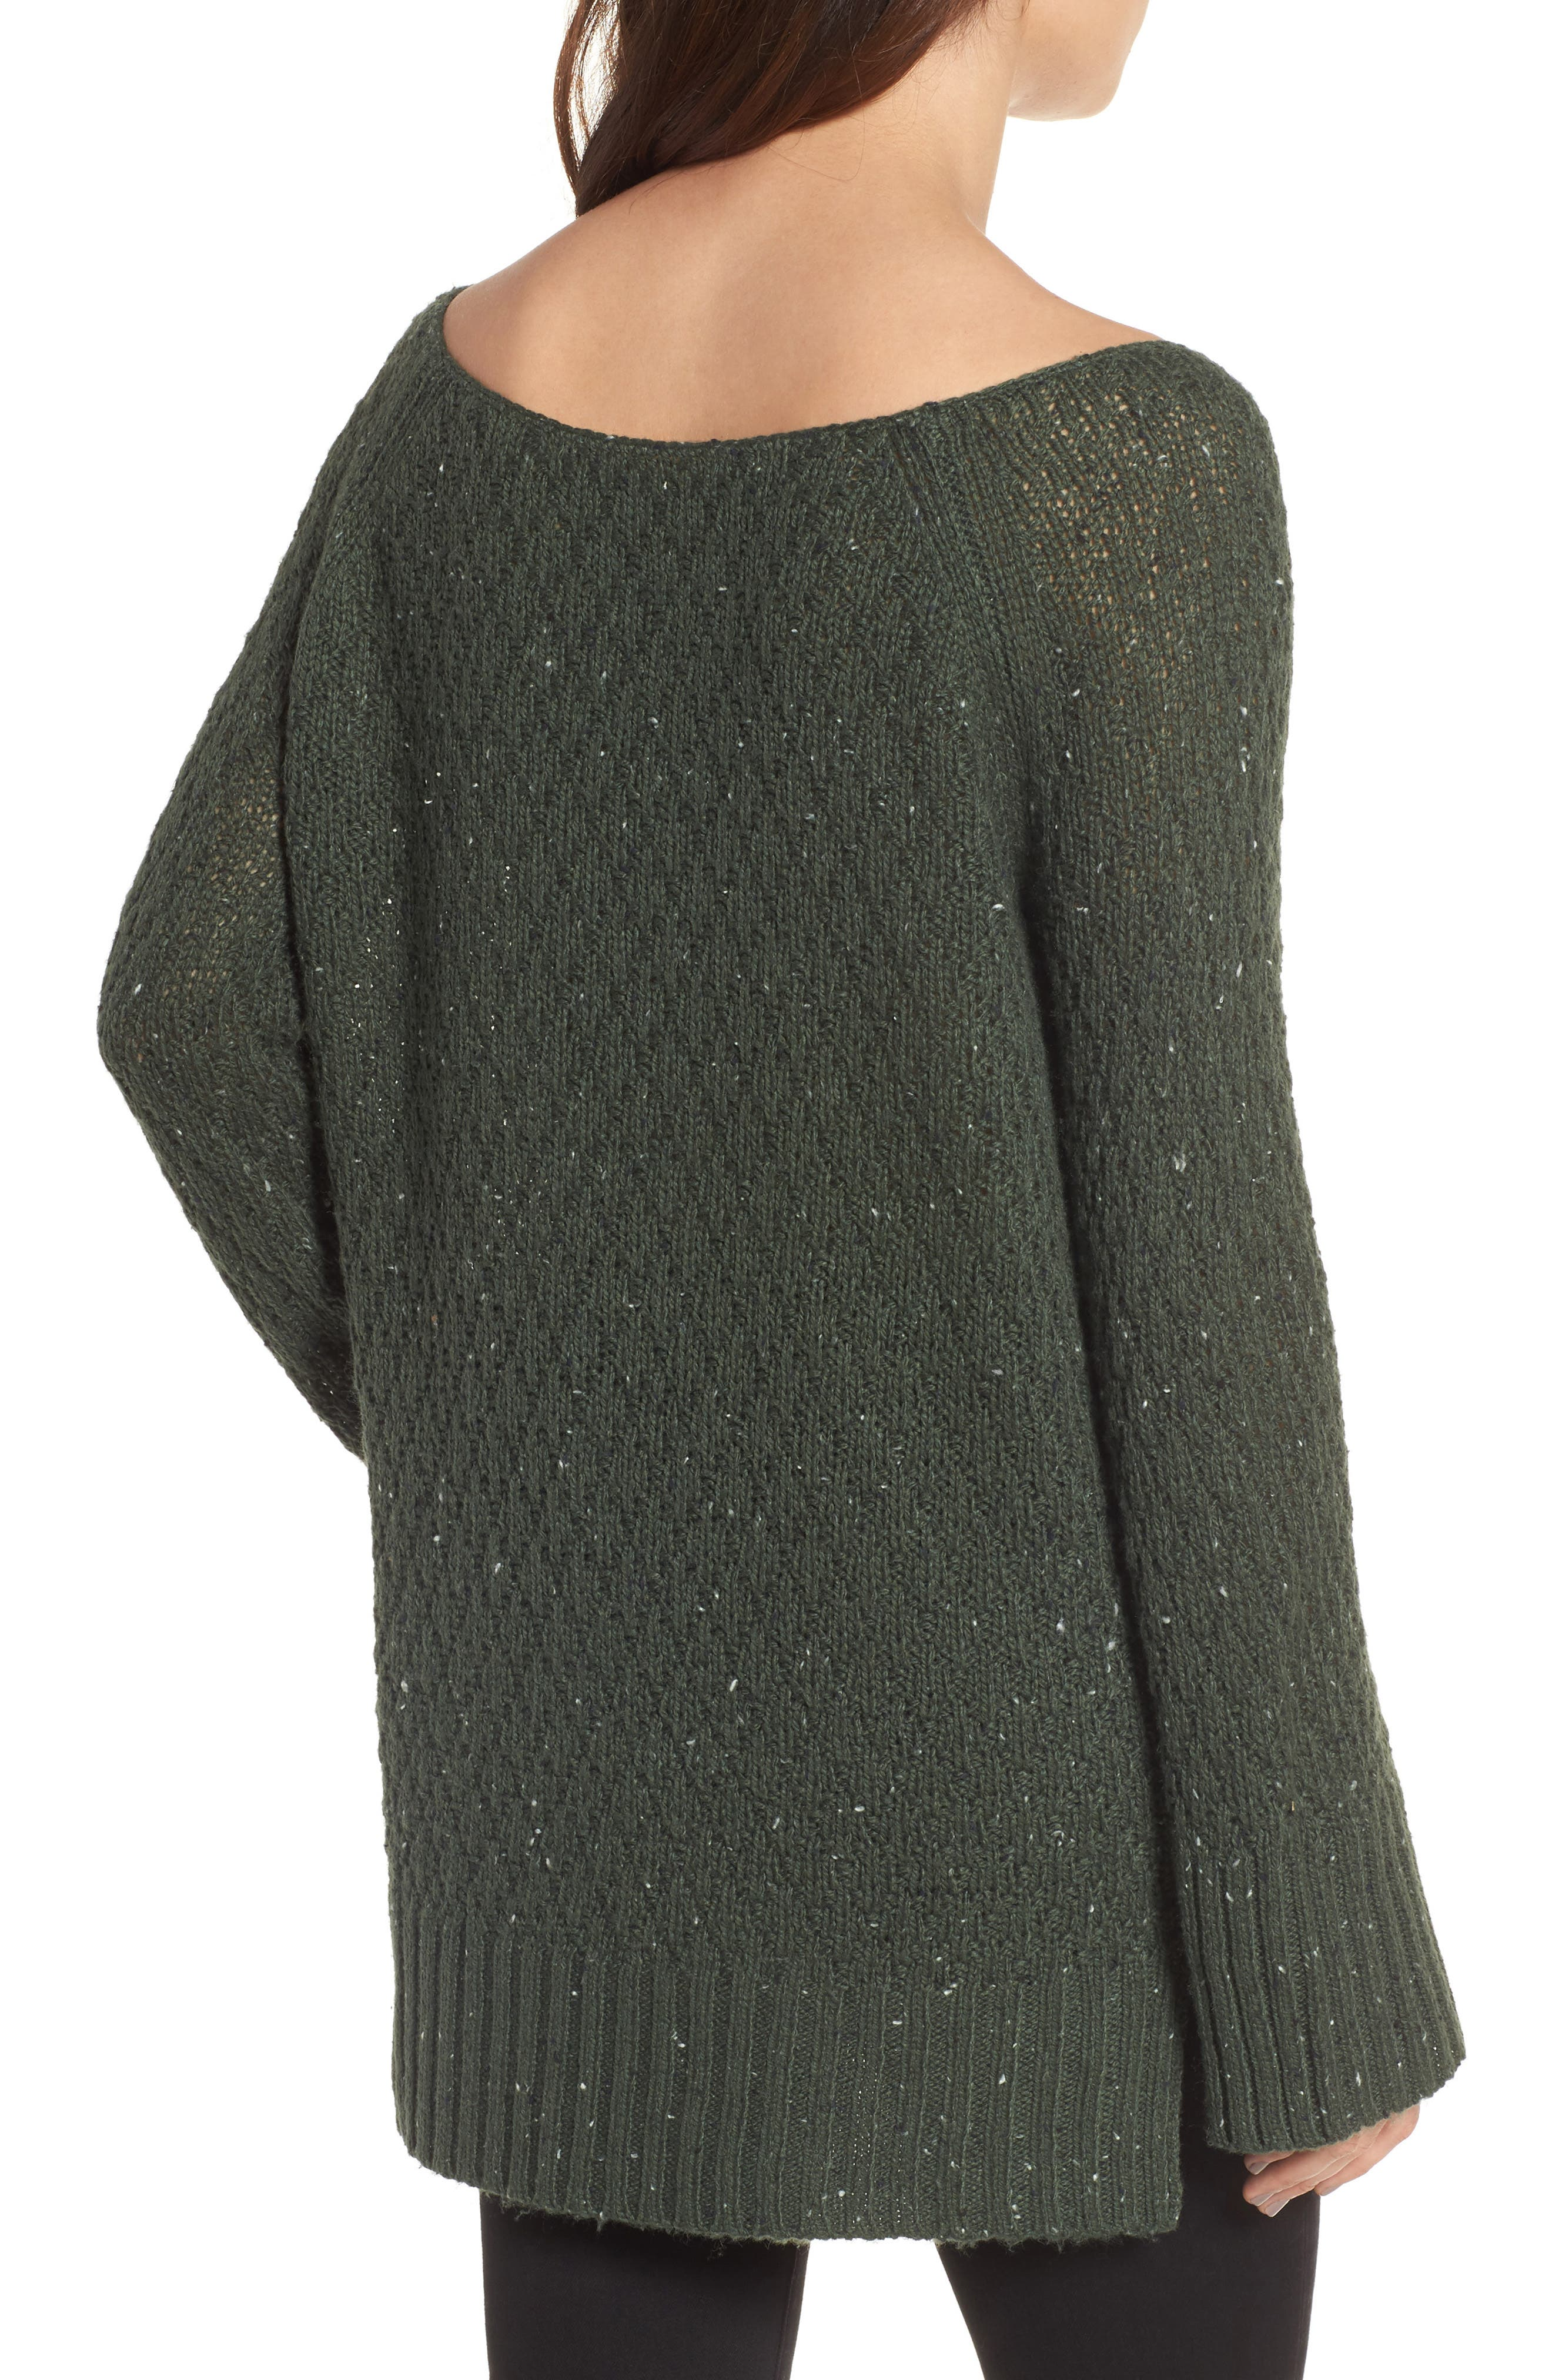 Slouchy Tunic Sweater,                             Alternate thumbnail 2, color,                             300